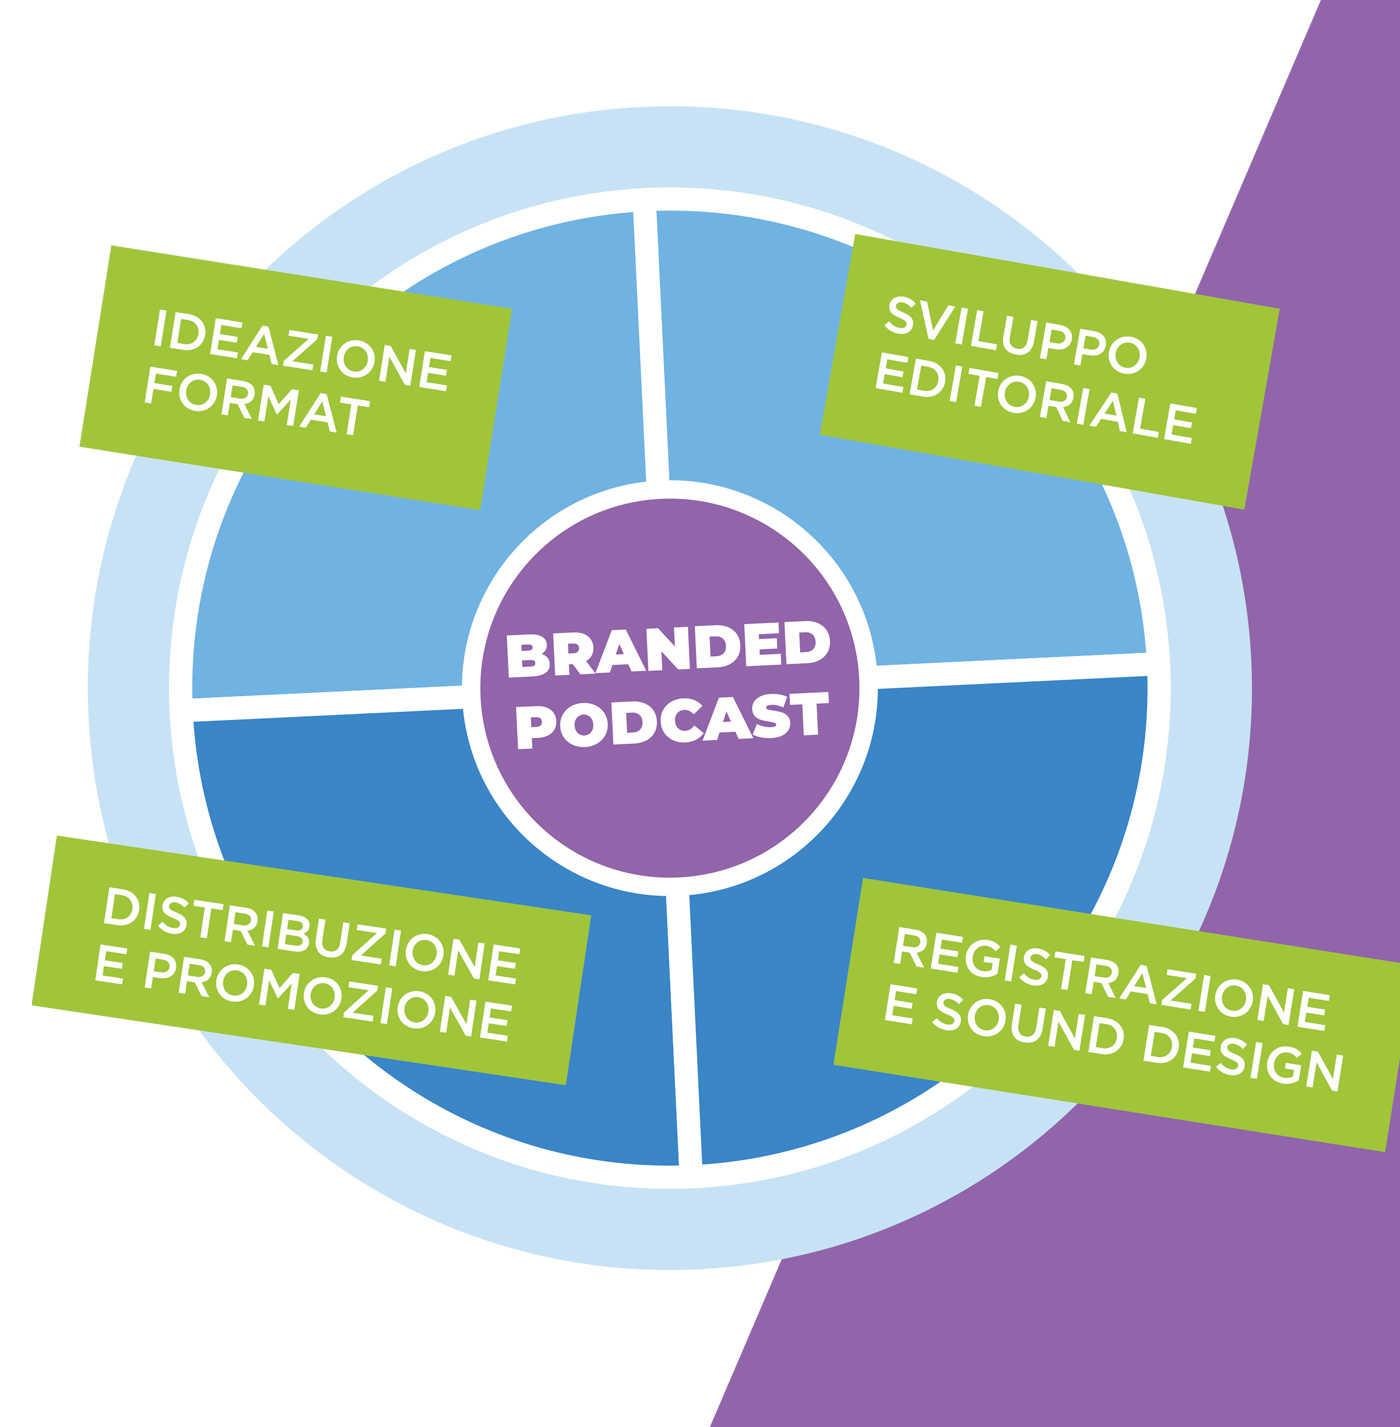 Branded podcast Soluzione Group